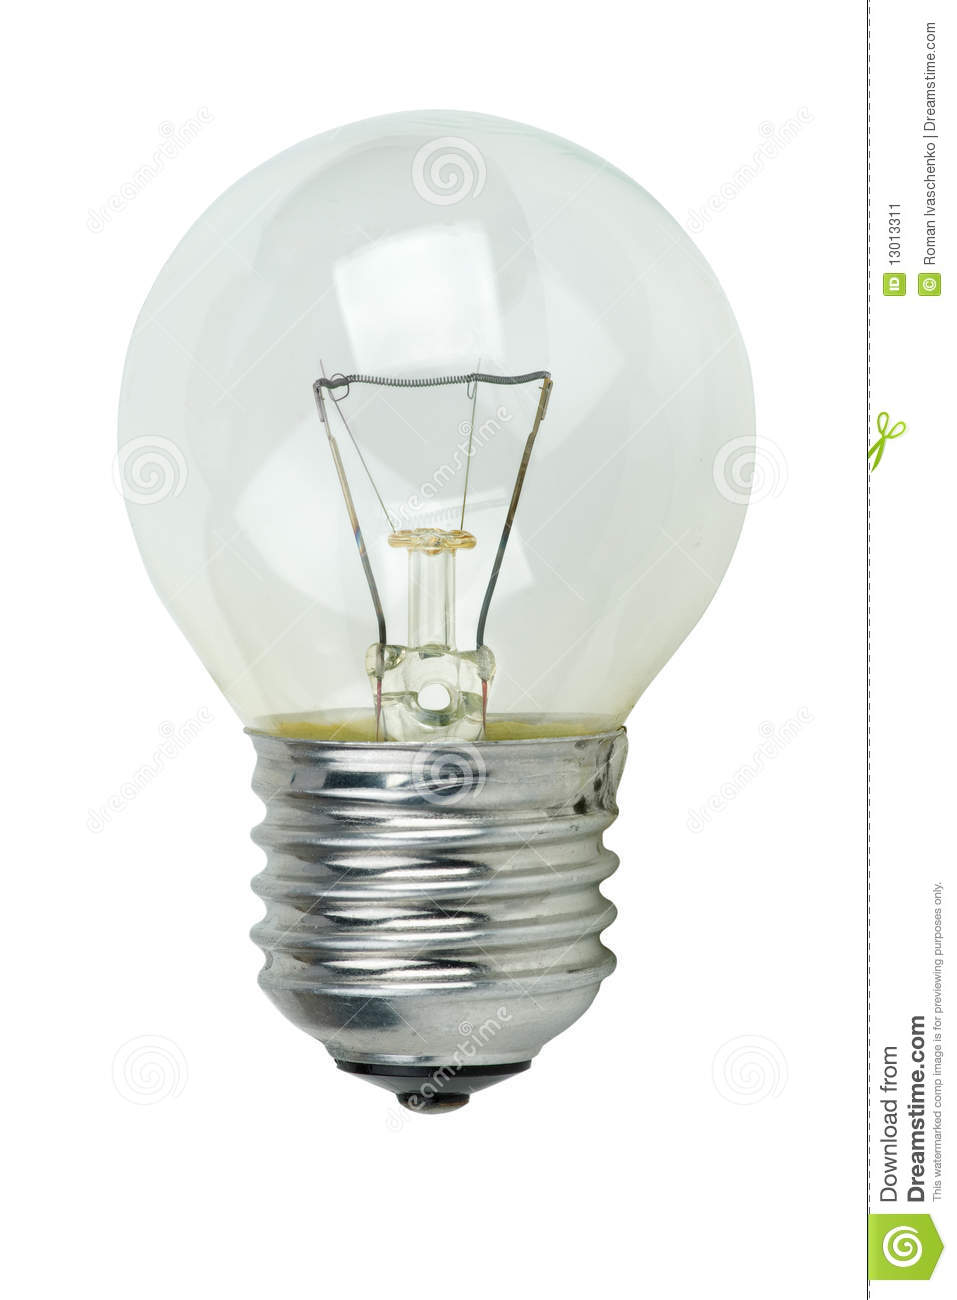 Small tungsten light bulb stock image image 13013311 Tungsten light bulbs